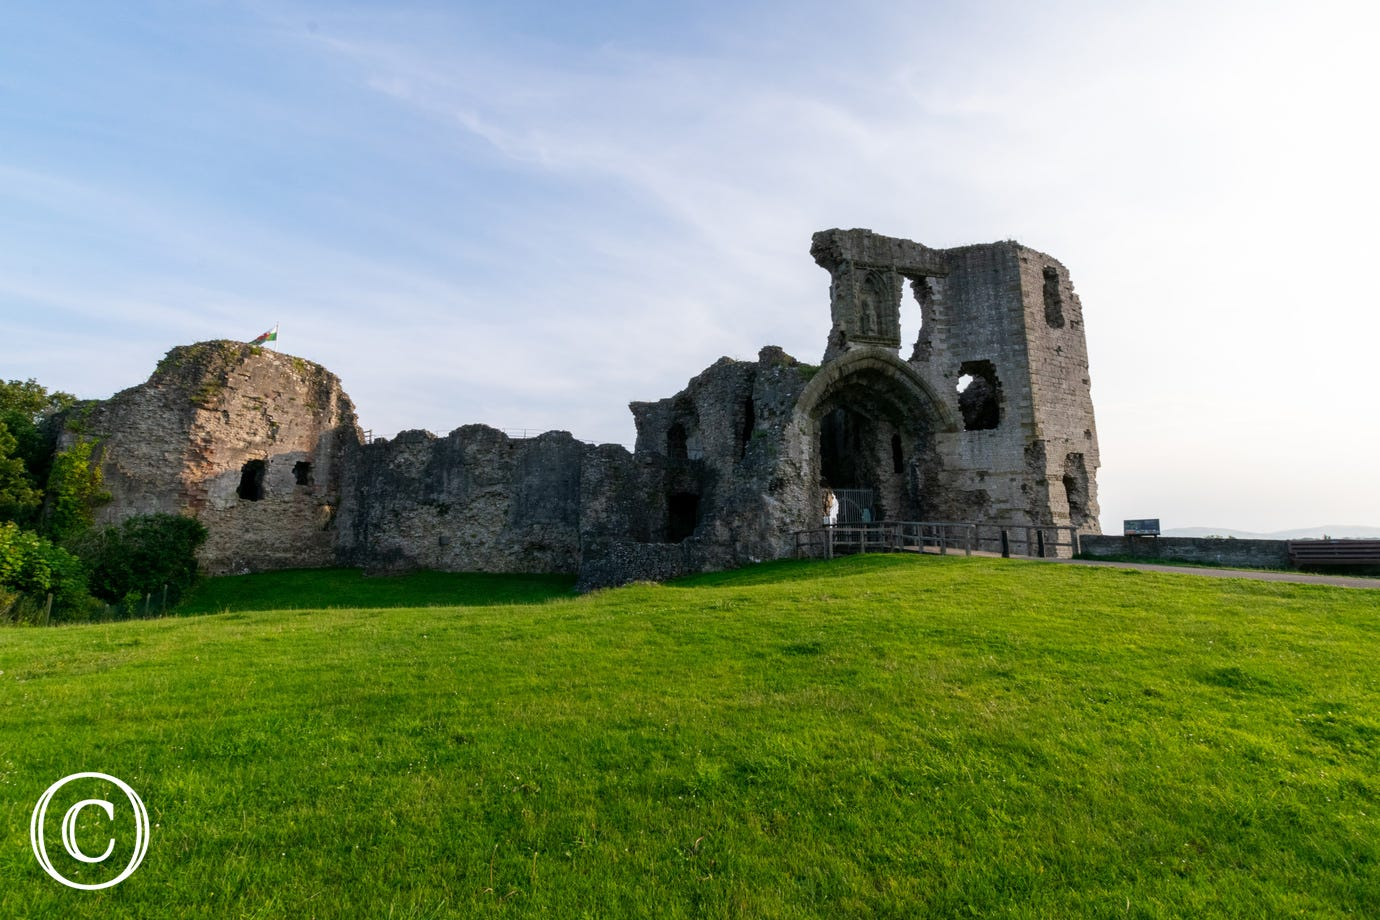 Denbigh Castle, 6 miles from your holiday accommodation in North Wales